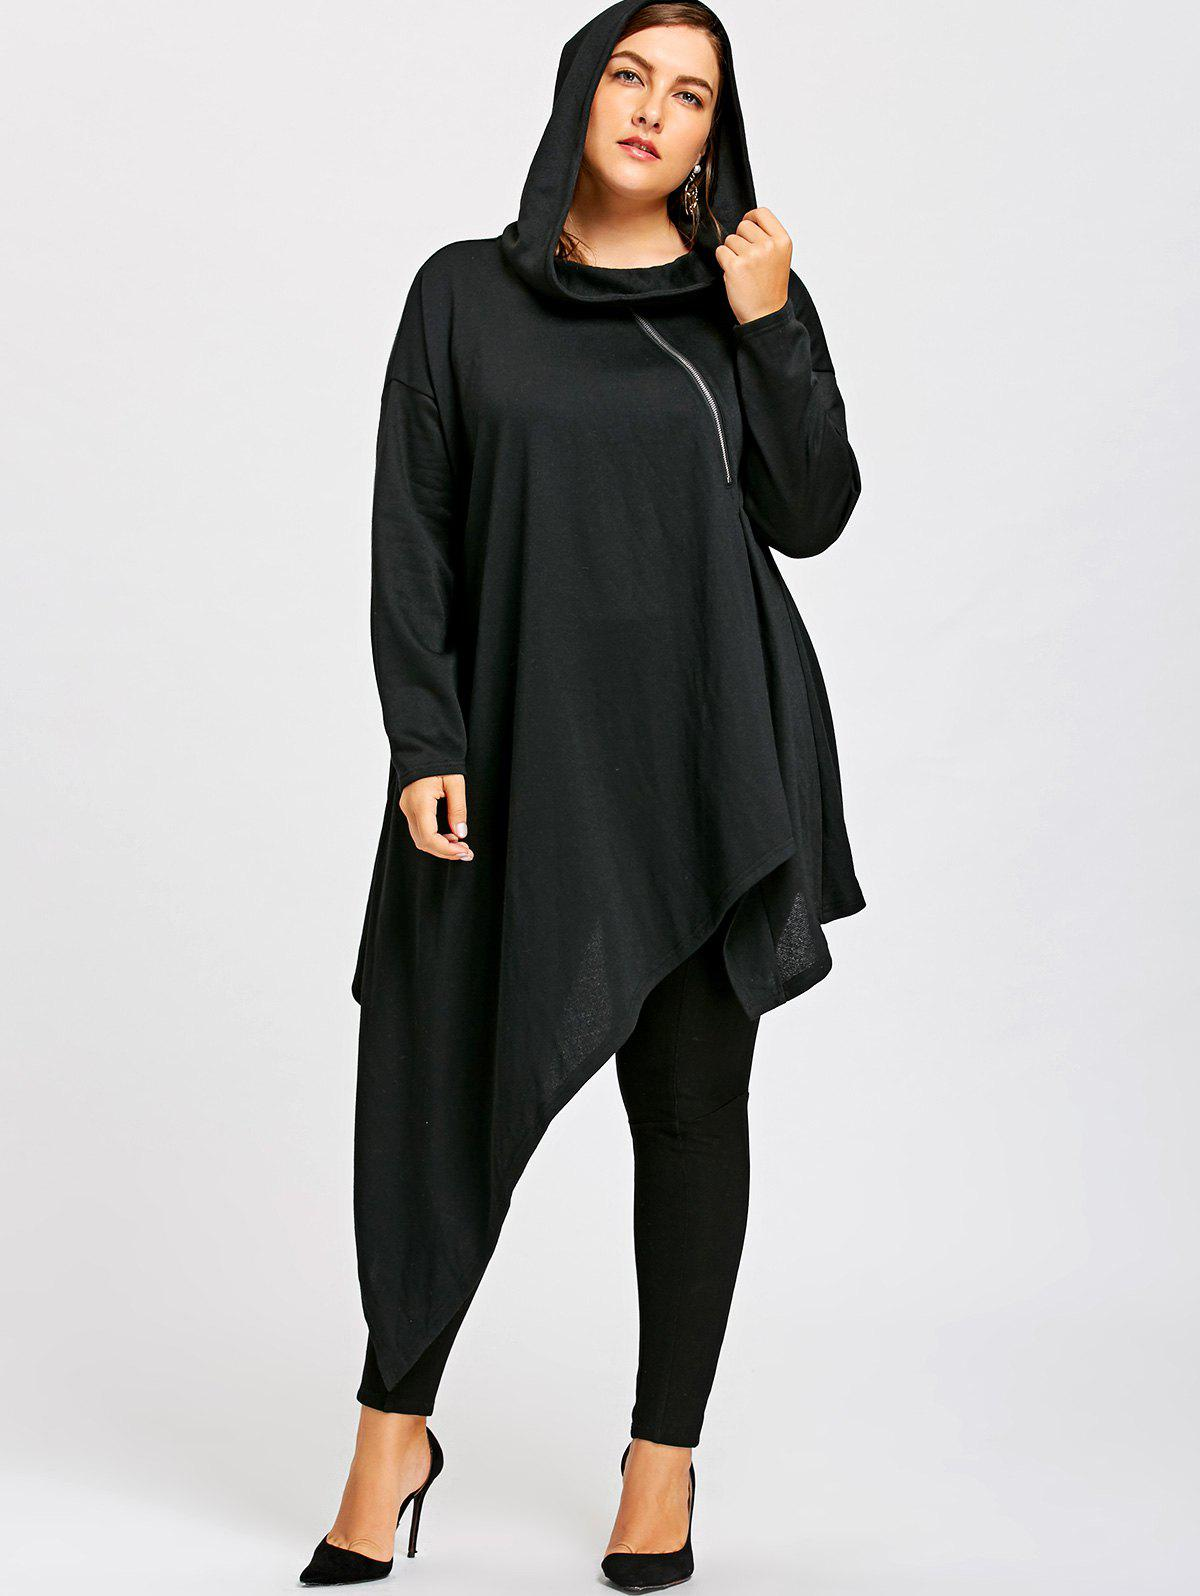 Plus Size Drop Shoulder Longline Asymmetrical HoodieWOMEN<br><br>Size: XL; Color: BLACK; Material: Polyester; Shirt Length: Long; Sleeve Length: Full; Style: Novelty; Pattern Style: Solid; Season: Fall,Spring; Weight: 0.9100kg; Package Contents: 1 x Hoodie;